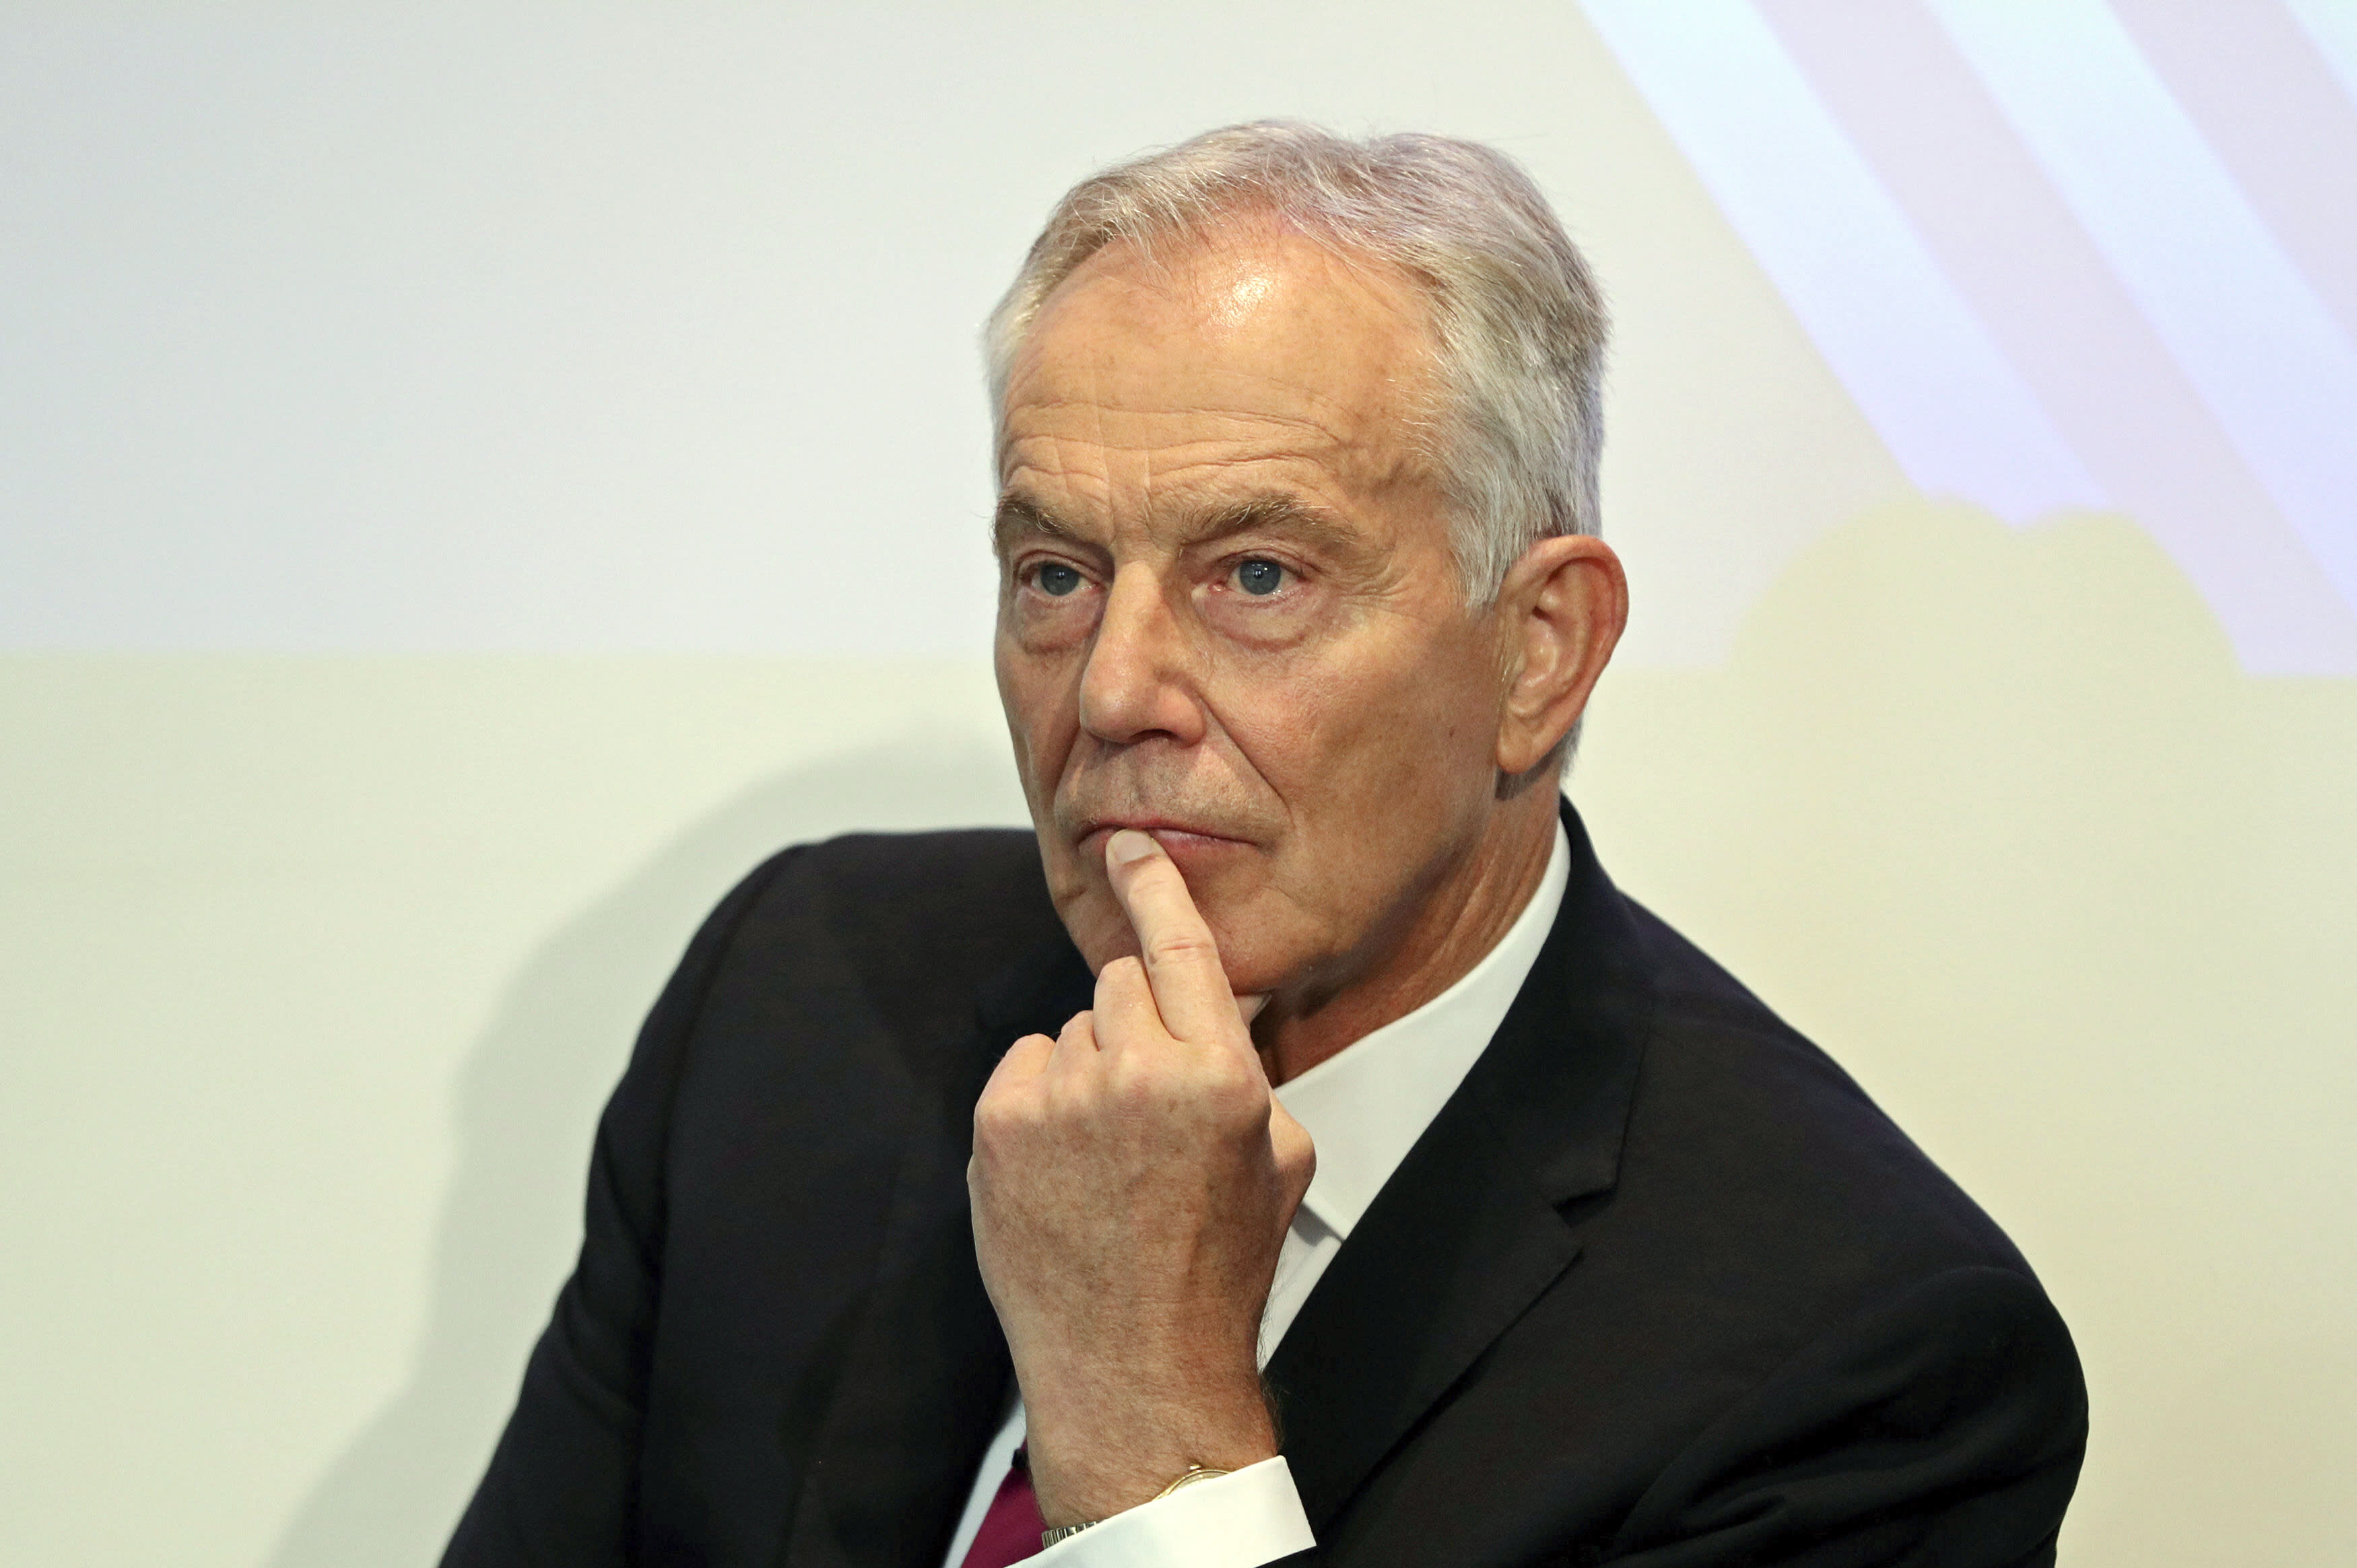 Former British prime minister Tony Blair gives a speech at the Institute for Government in central London, Monday Sept. 2, 2019. Tony Blair warned that politicians face a critical juncture in history as they prepare to consider legislation meant to prevent the country from leaving the European Union without a deal. (Aaron Chown/Pool via AP)